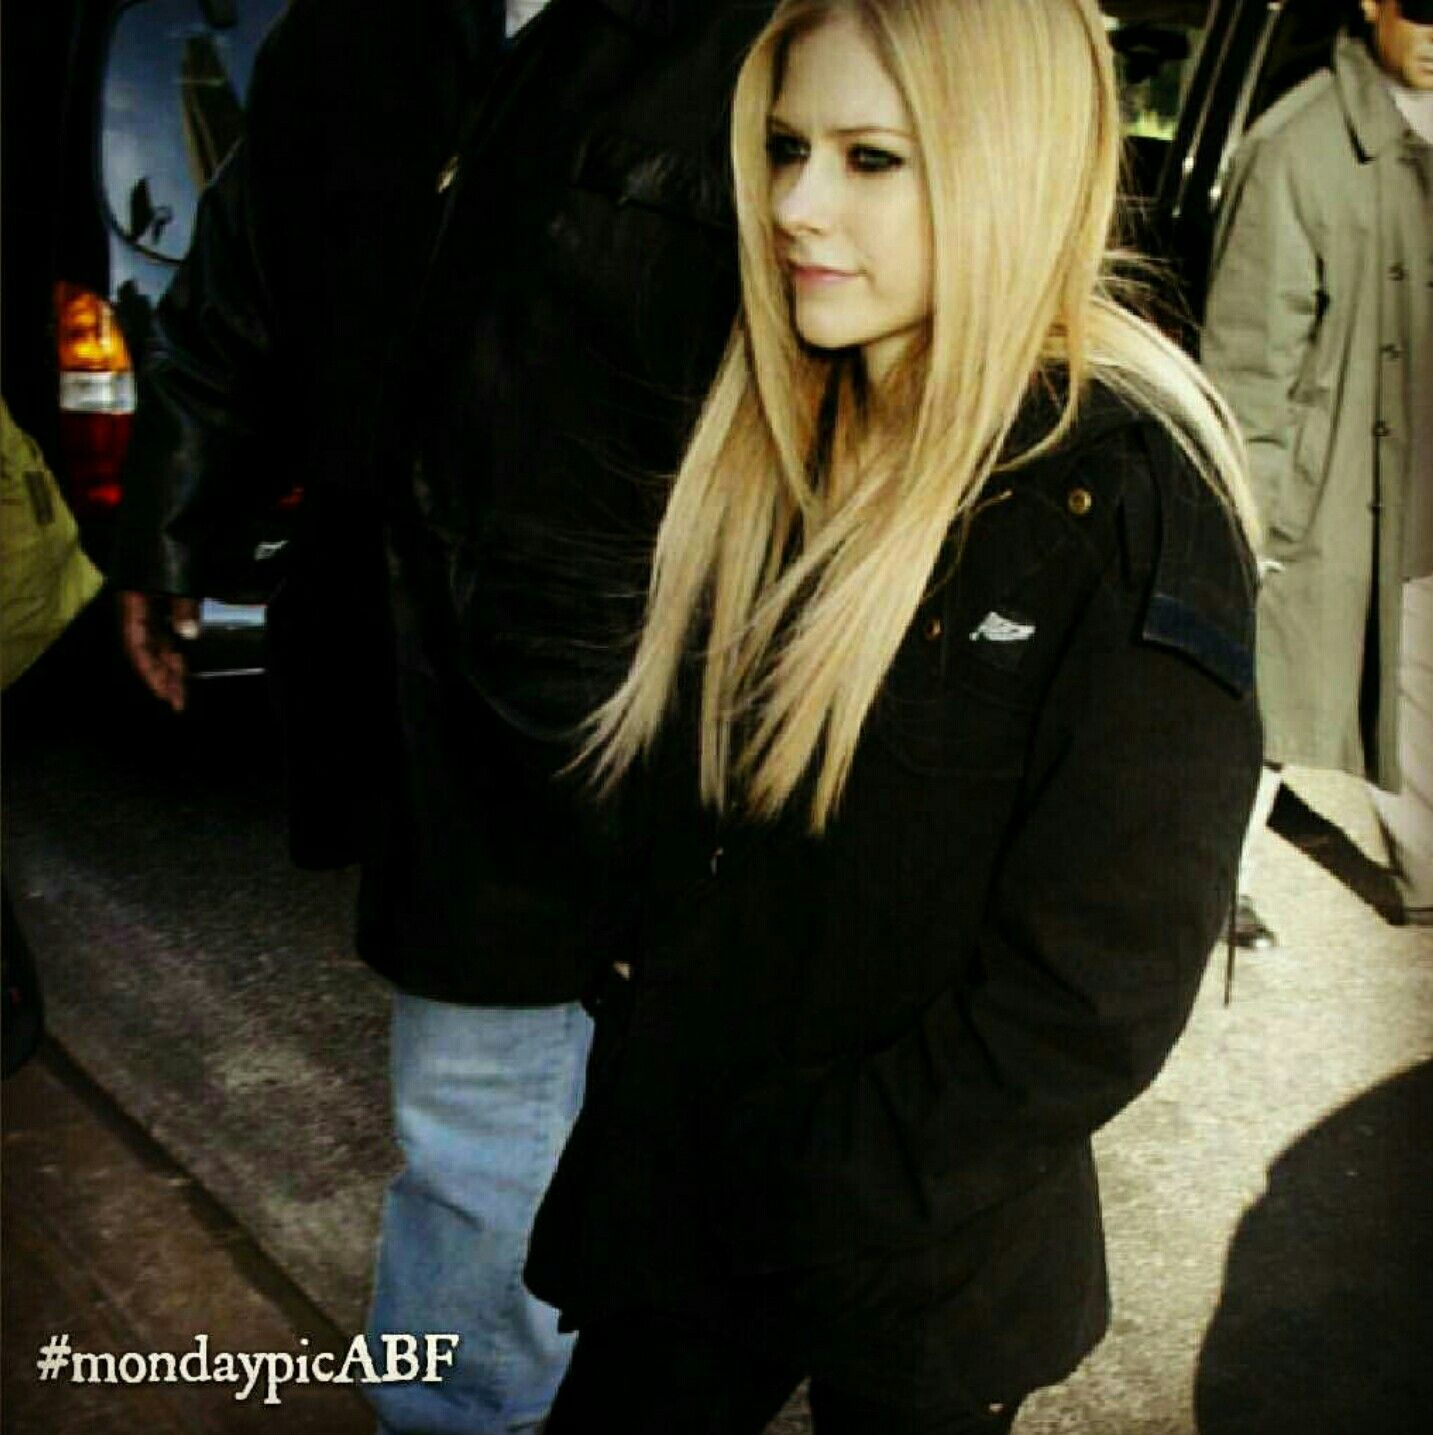 Avril Lavigne te in public, I really miss this makeup and hair look